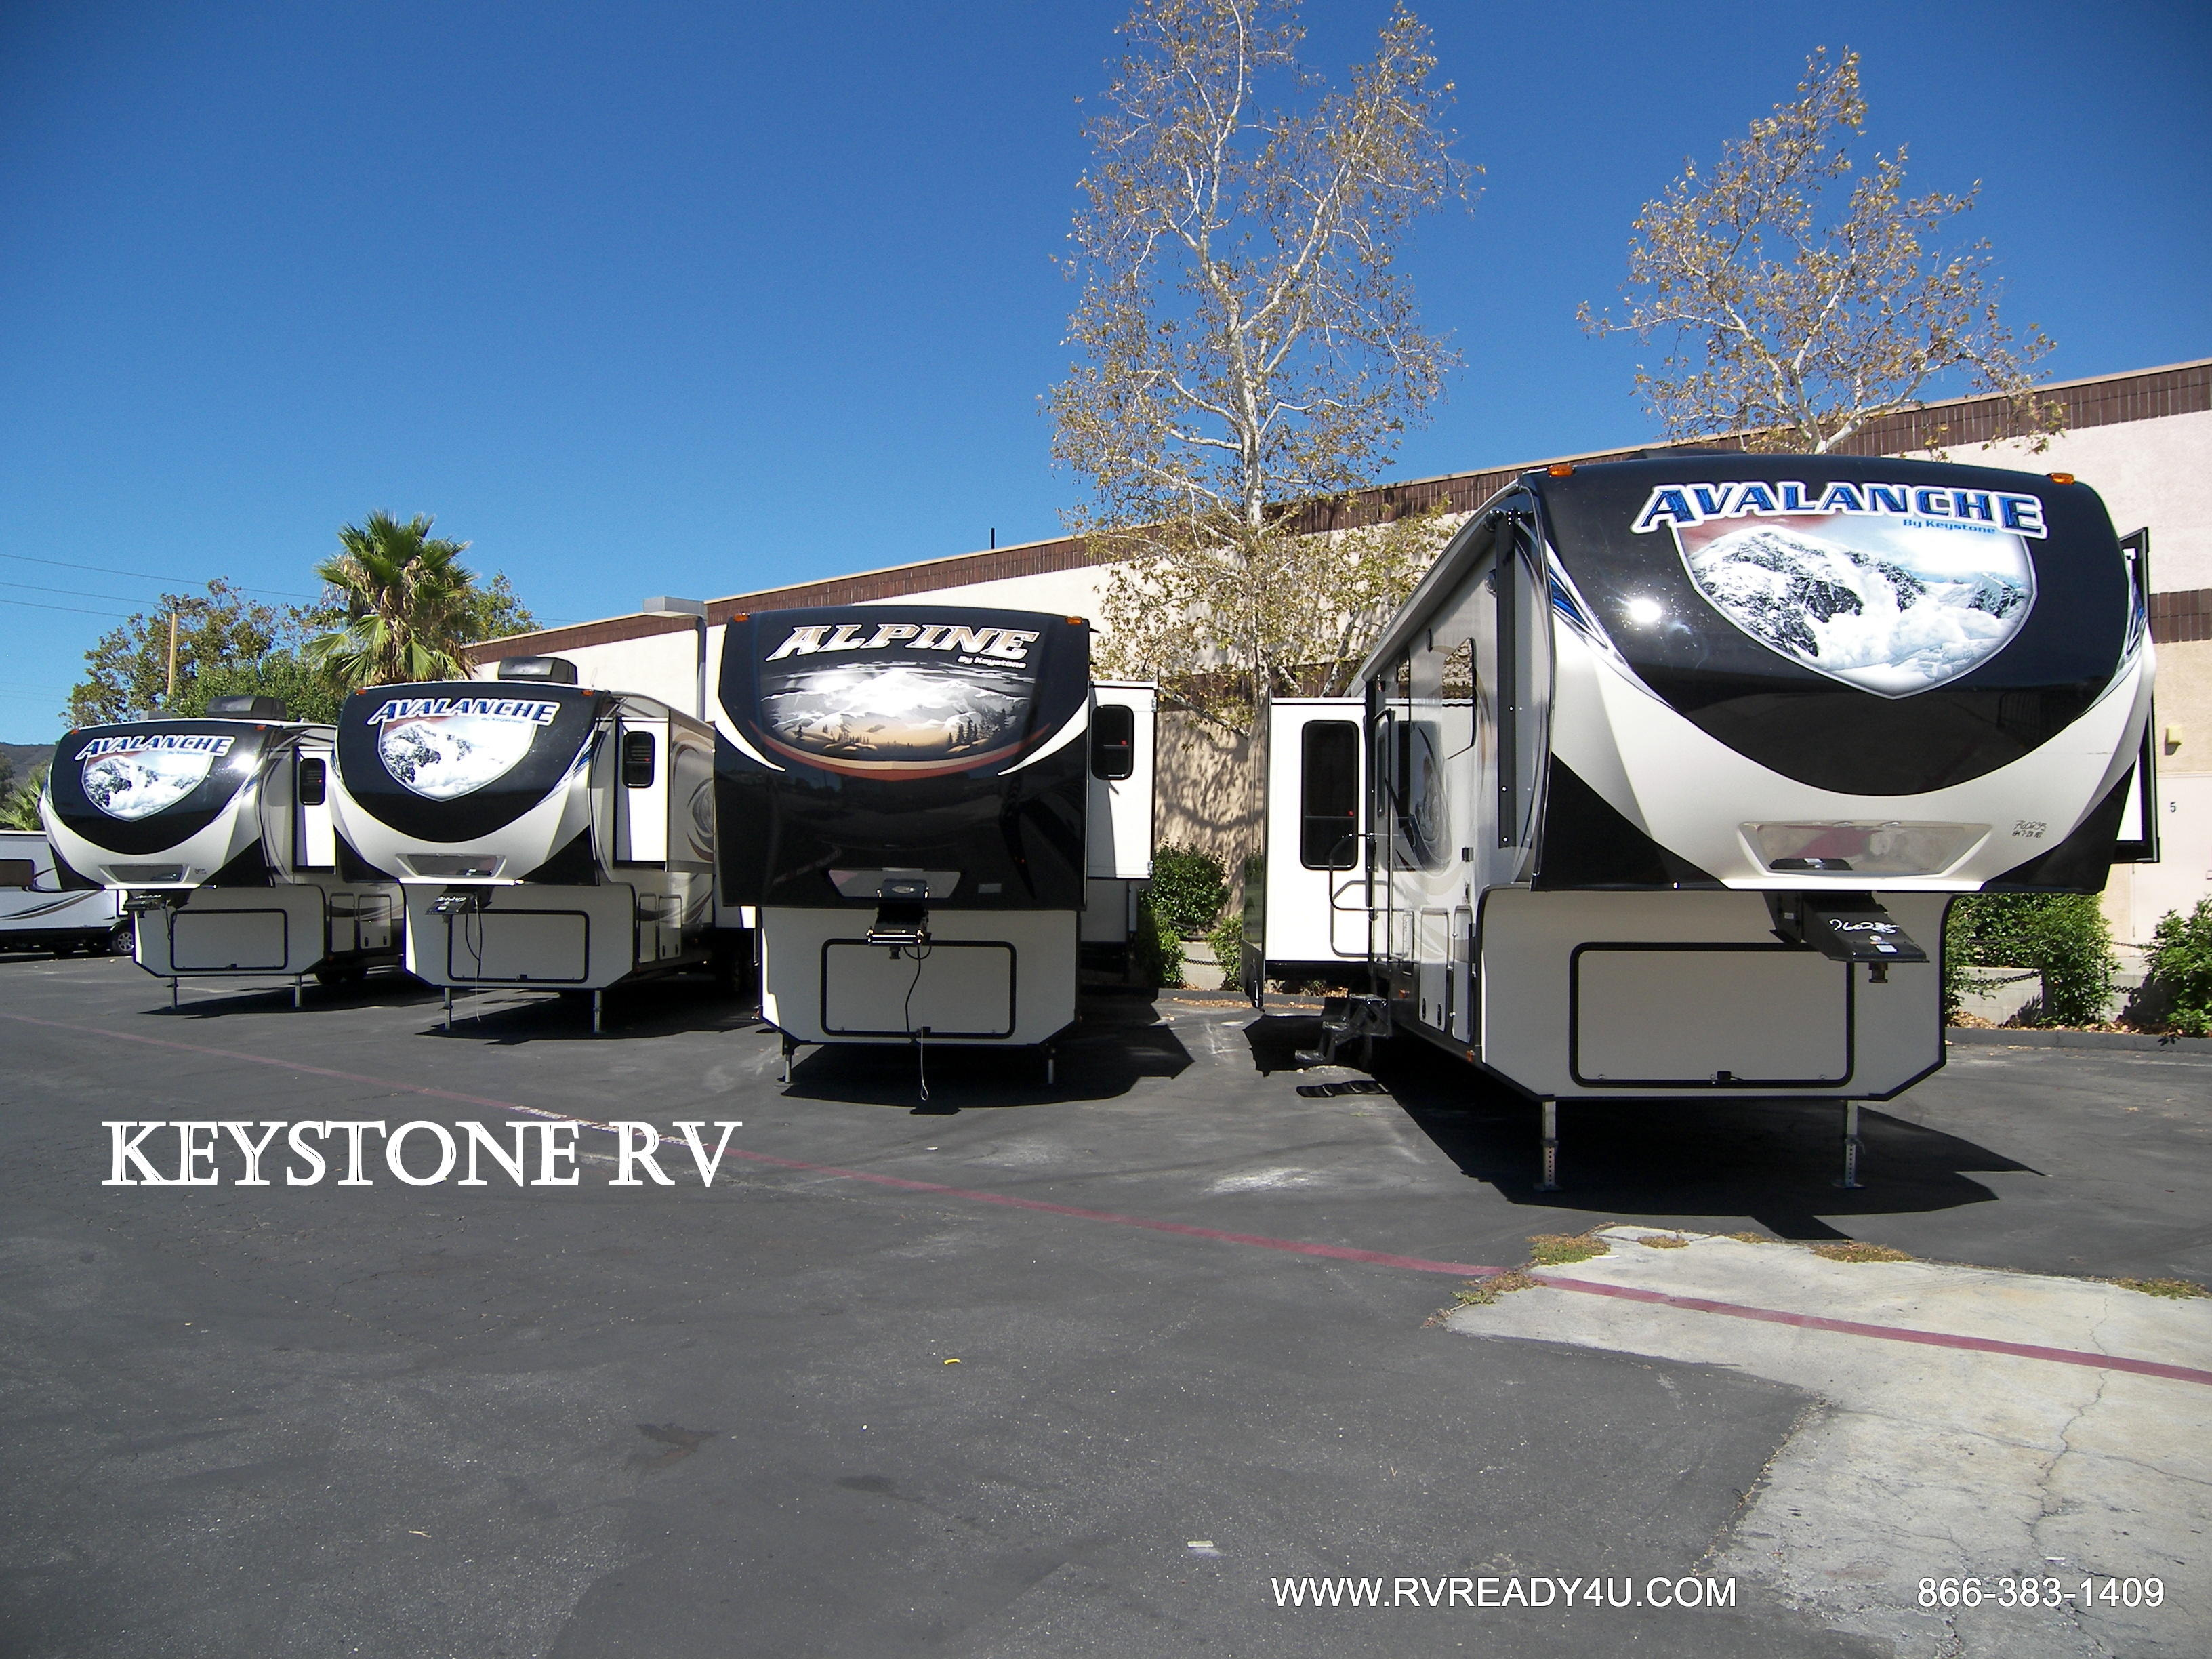 Rv Ready Coupons Near Me In Lake Elsinore 8coupons